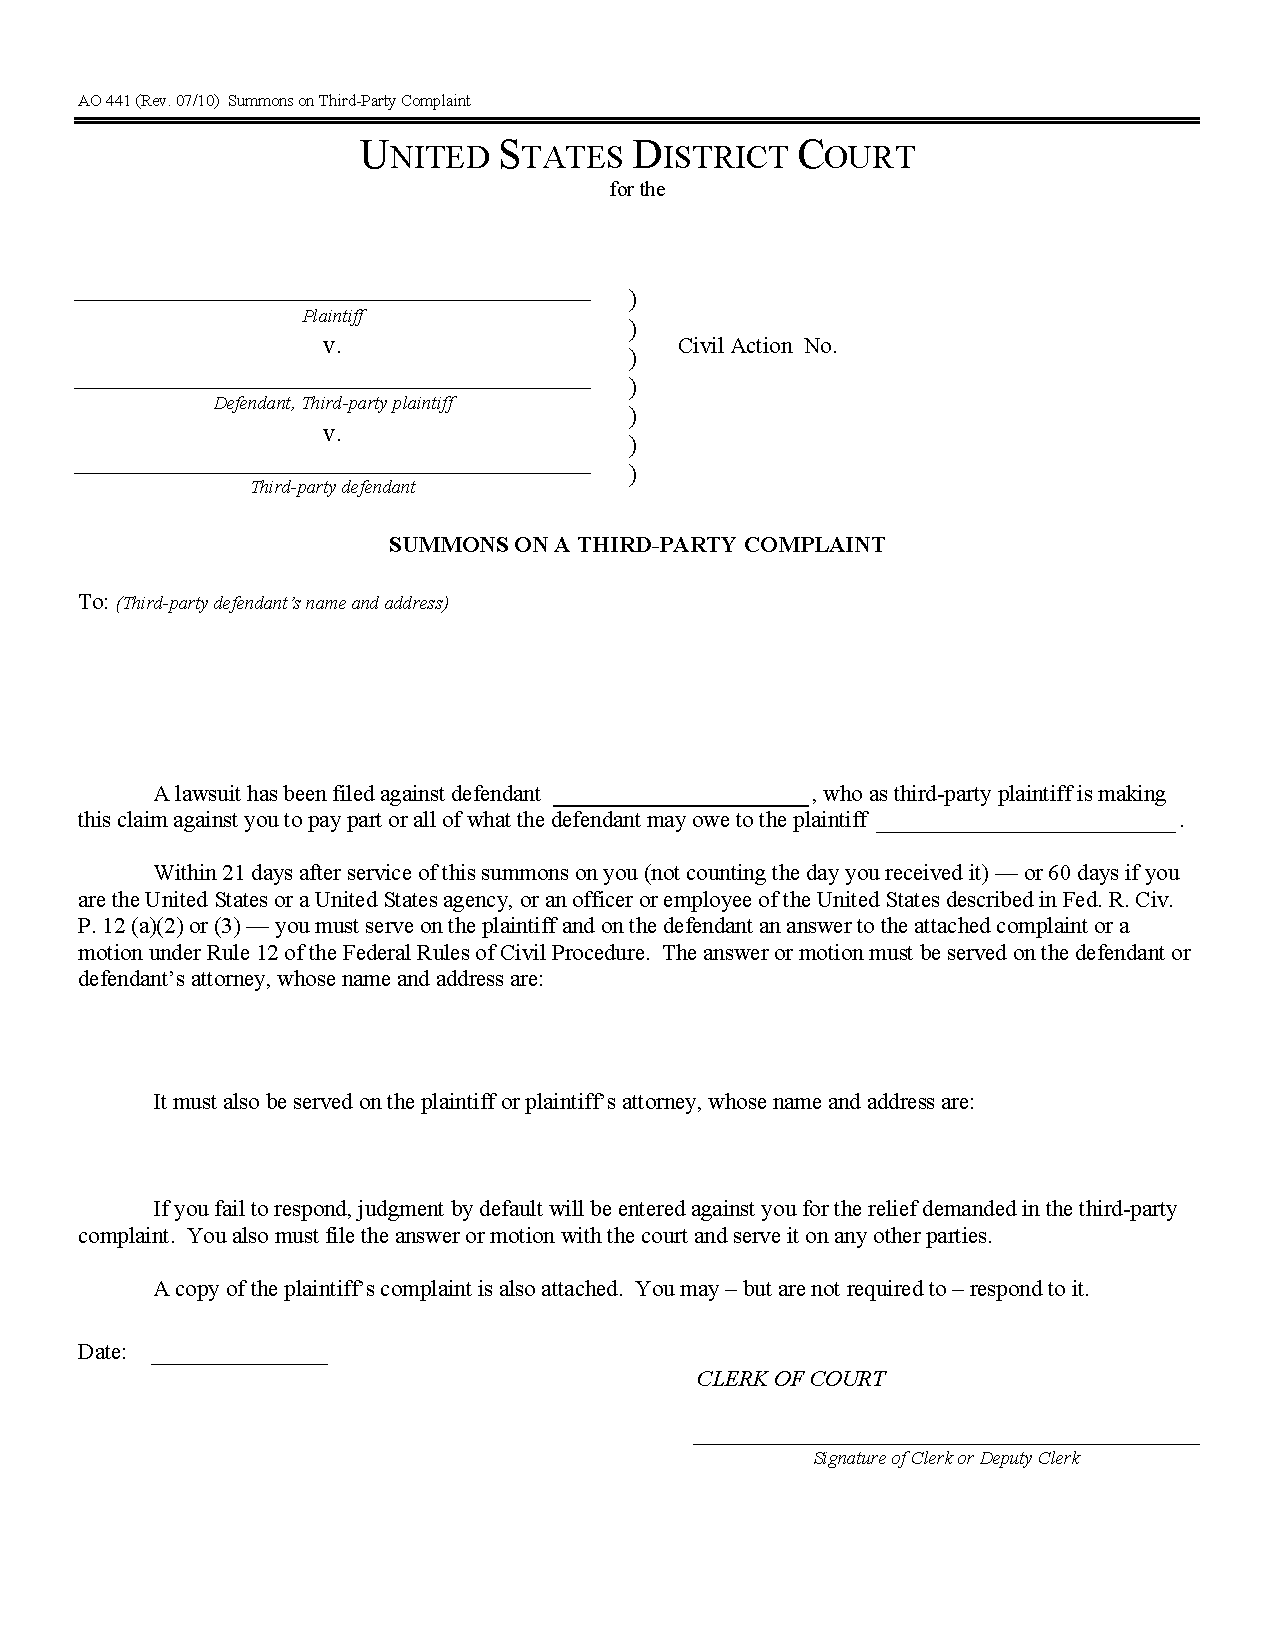 Form AO 441 Summons on Third-Party Complaint